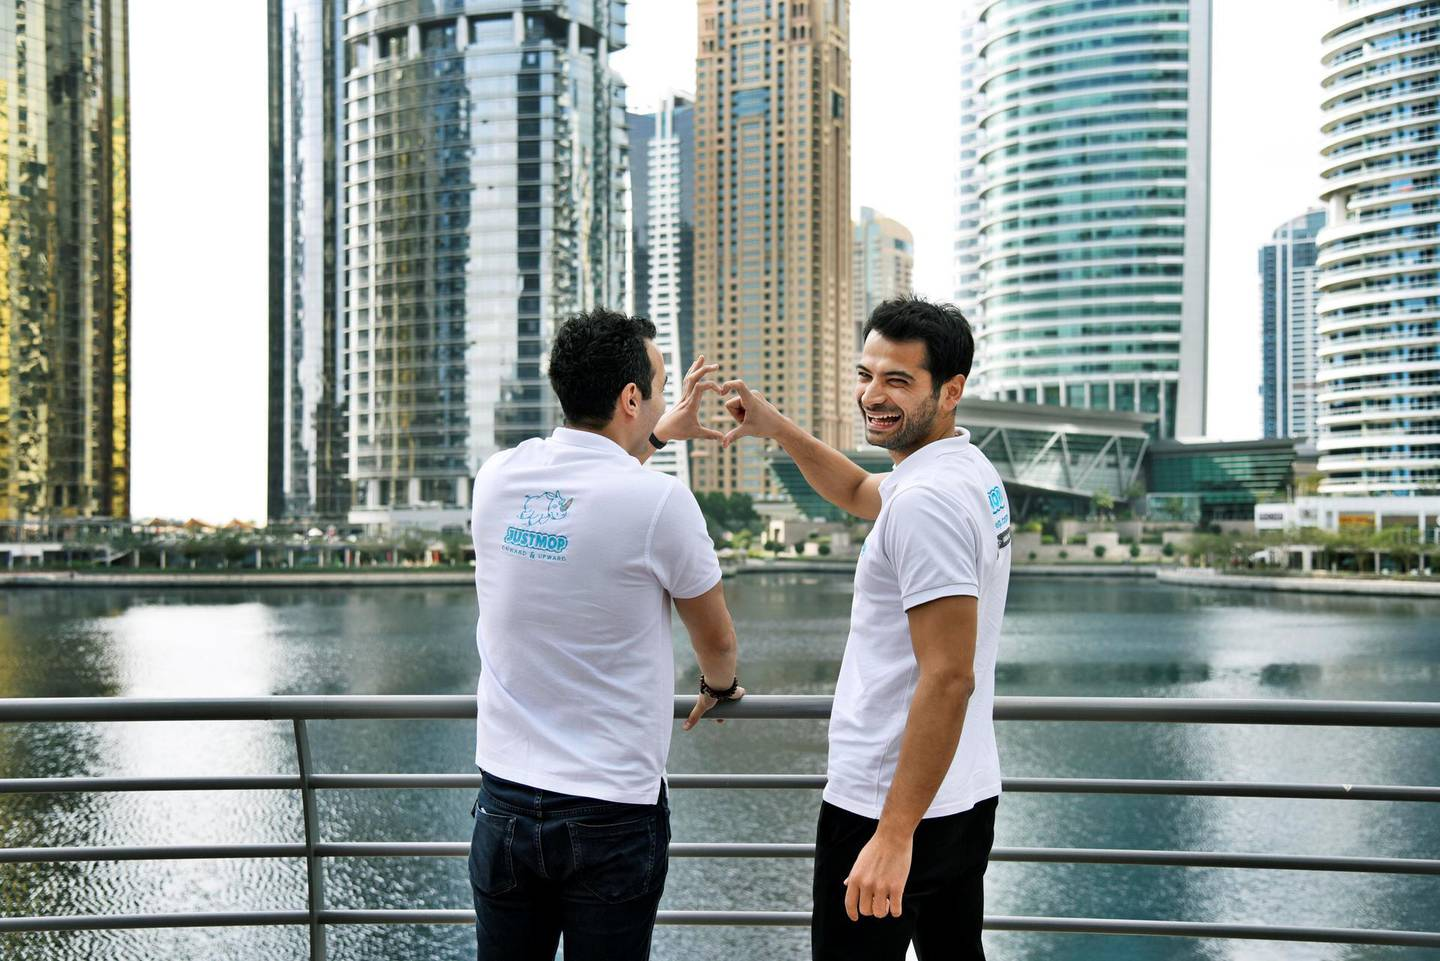 Kerem Kuyucu, right, and AliCagatay Ozcan, founders of Justmop, laugh while posing for photos outside their office at Jumeirah Lake Towers, Dubai, UAE, Wednesday, Feb. 12, 2020. The two have now transformed their marketplace into a super app and expanded into 4 GCC countries. Photos by Shruti Jain The National